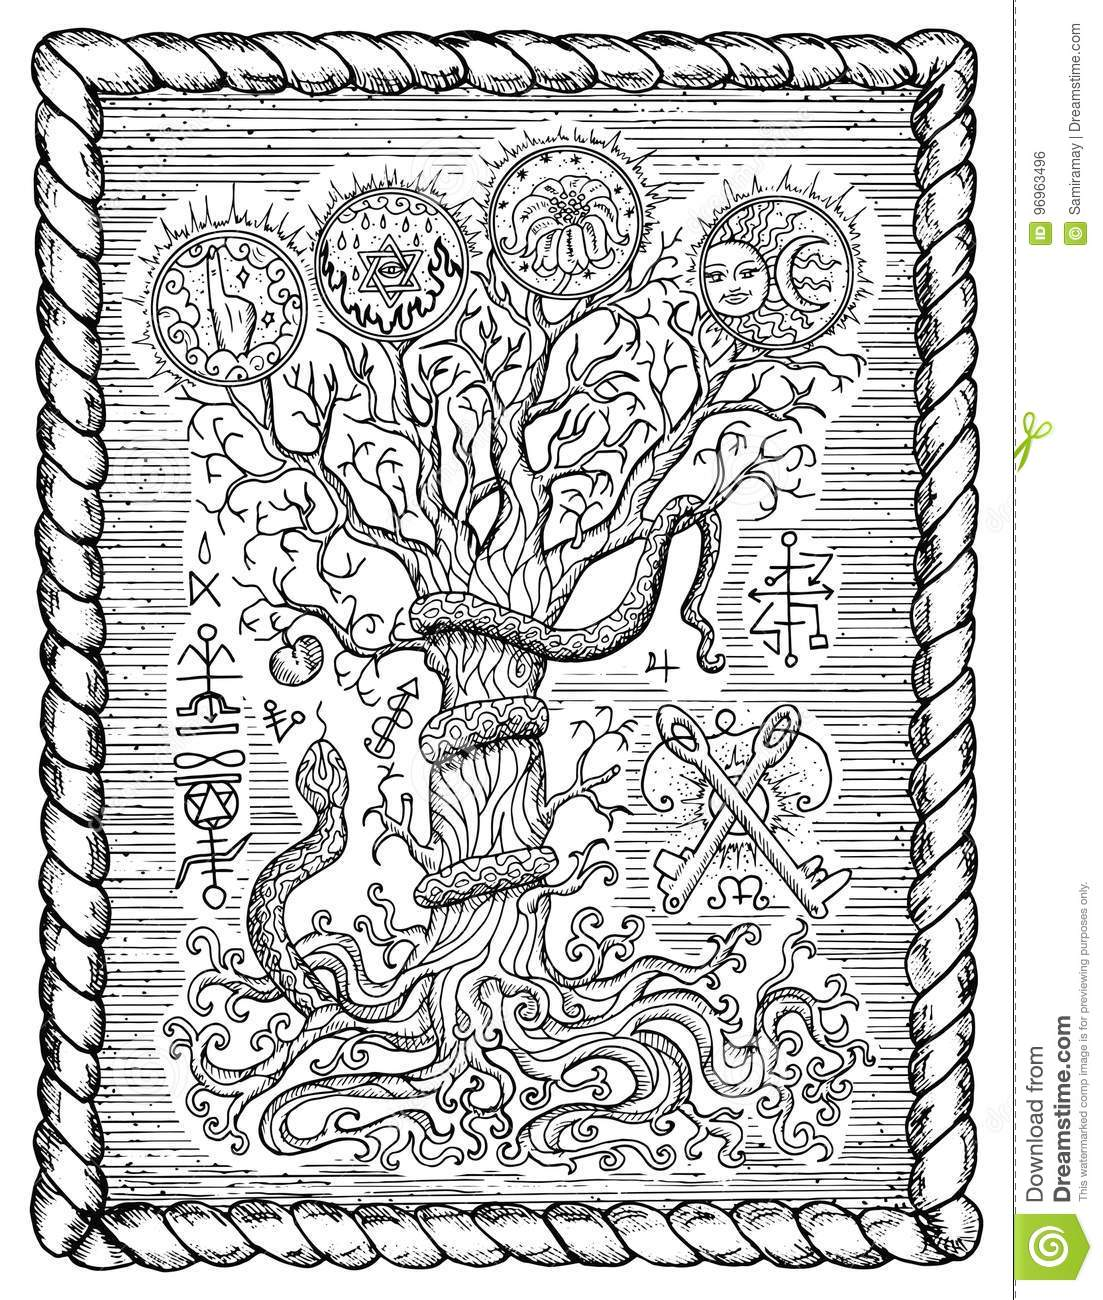 Black And White Drawing With Mystic And Christian Religious